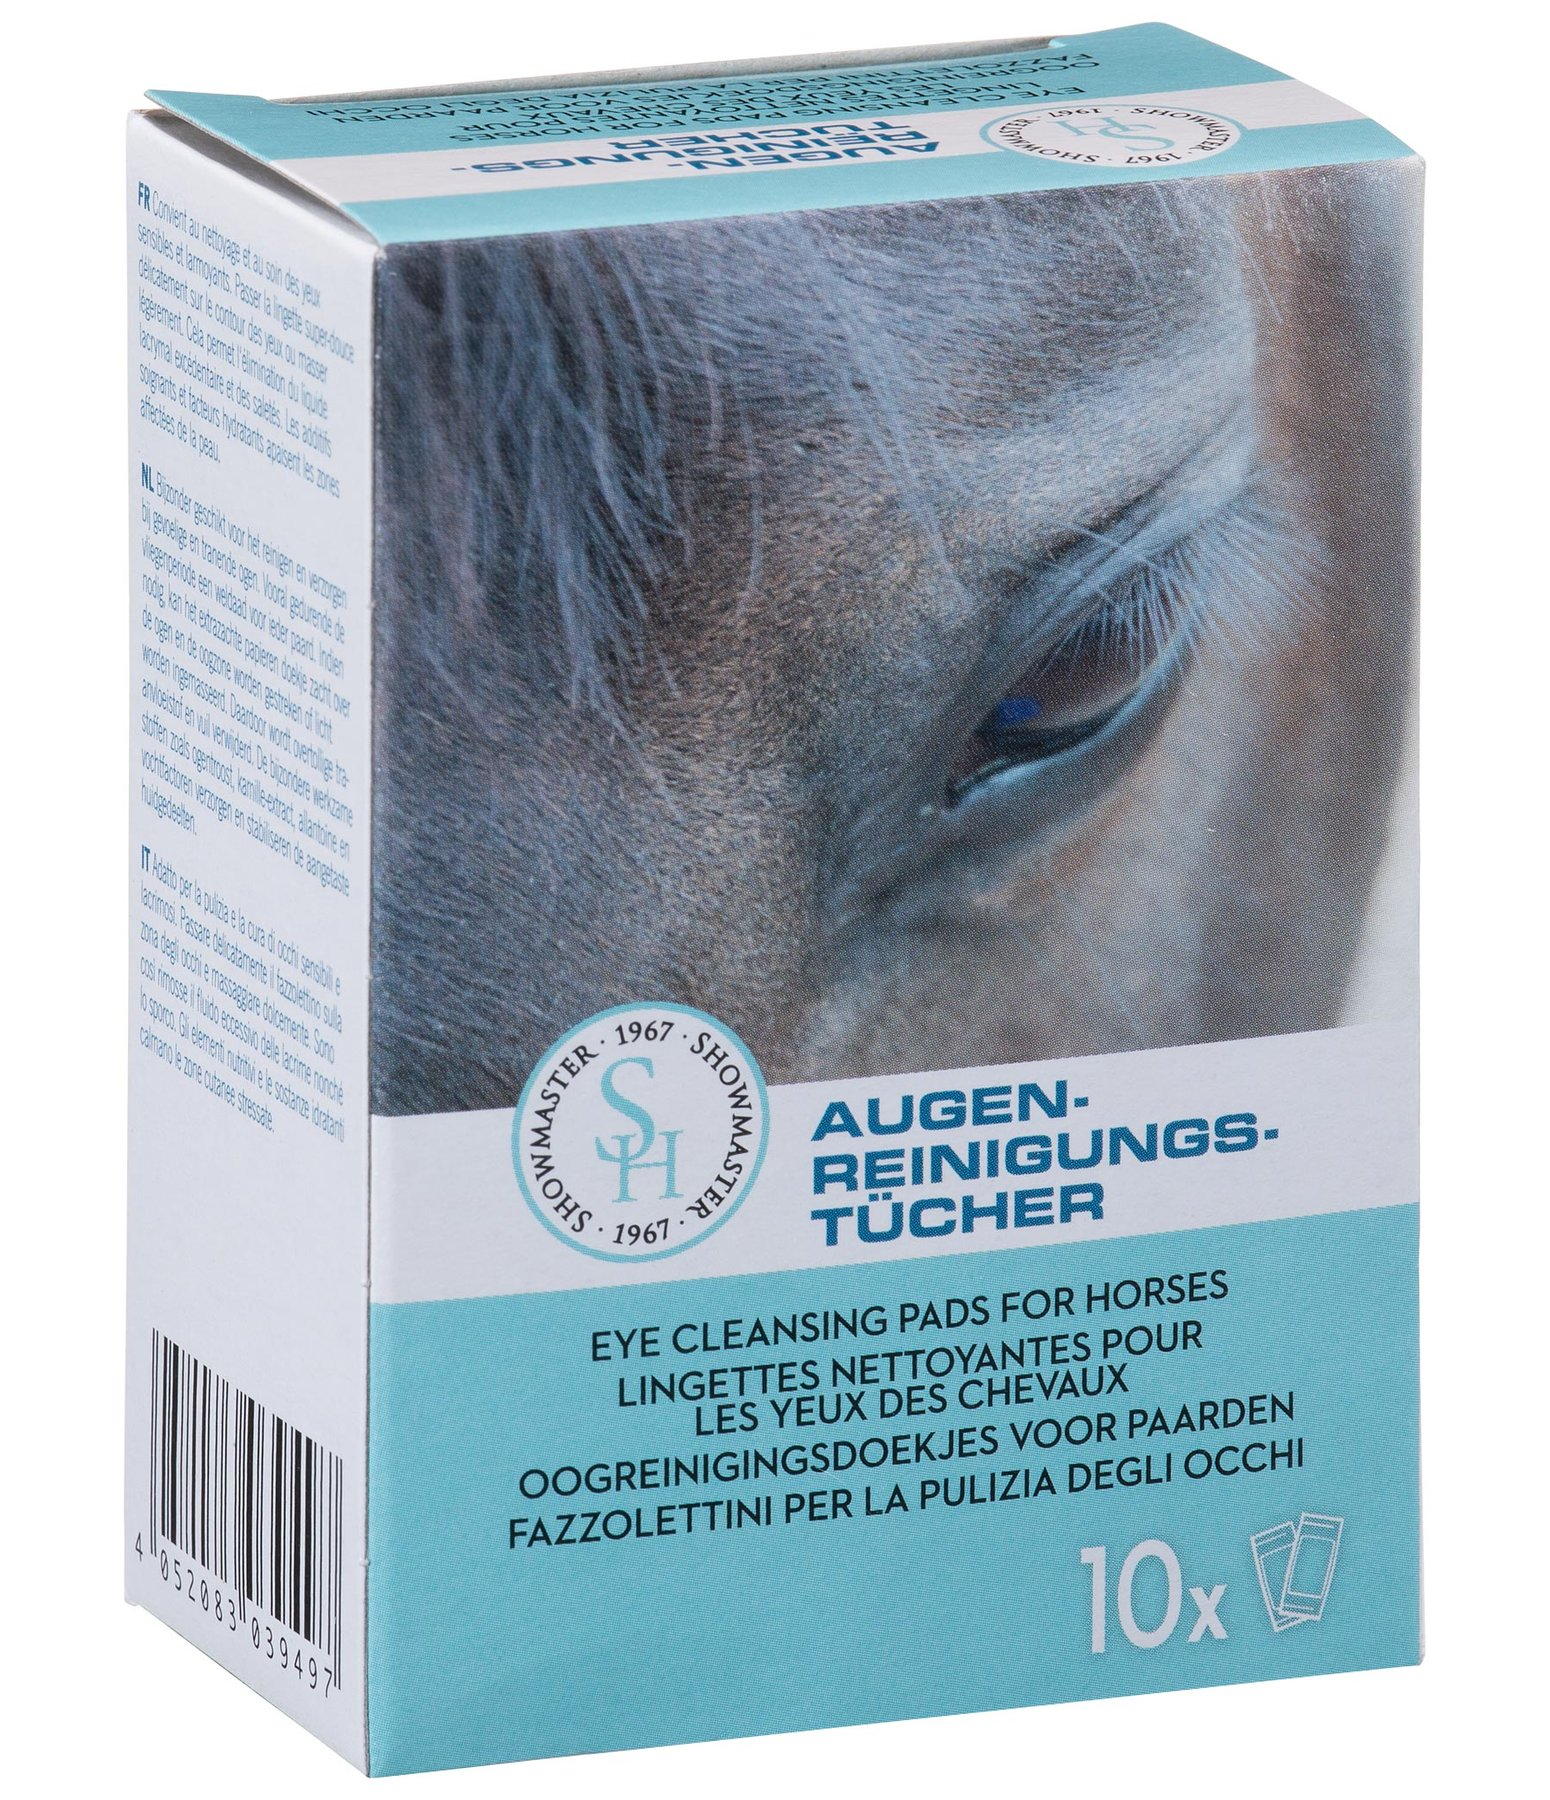 Eye Cleansing Wipes